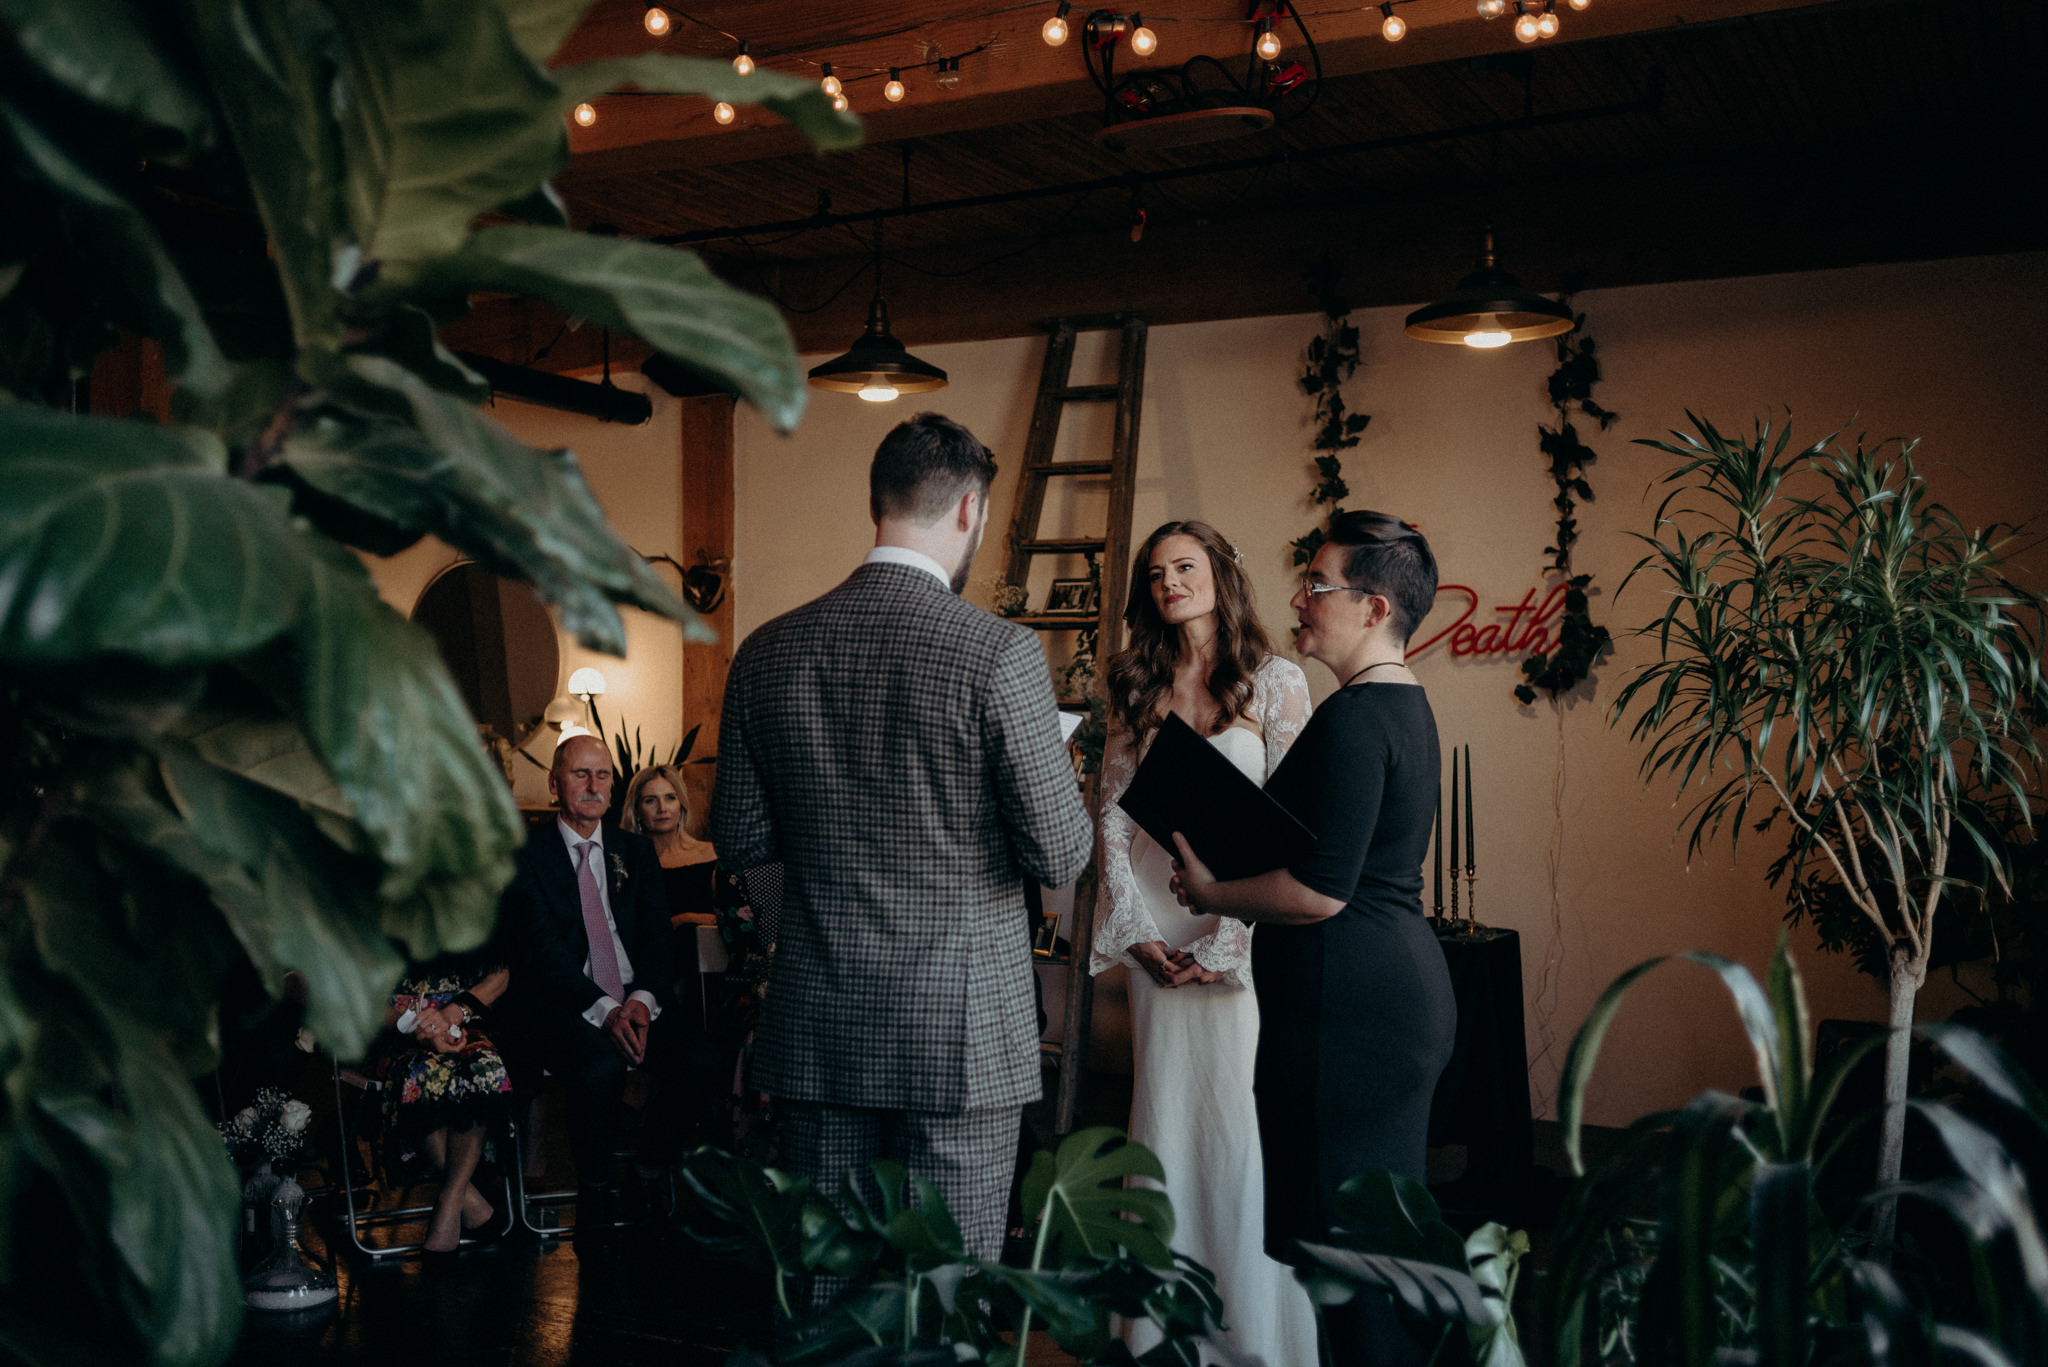 groom reading vows to bride surrounded by plants in old loft apartment, loft wedding in Toronto